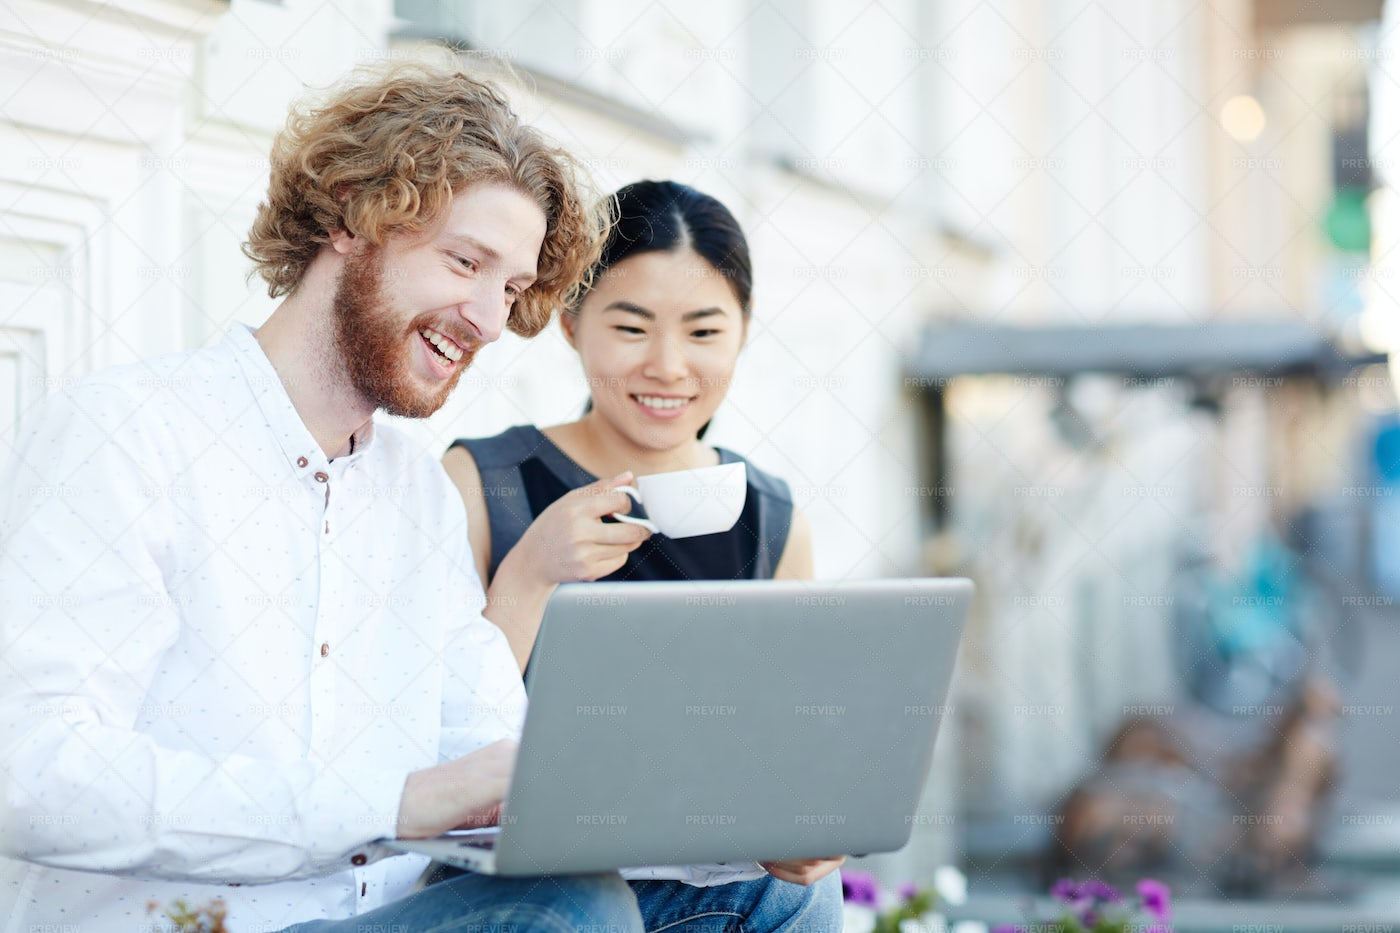 Networking Outdoors: Stock Photos